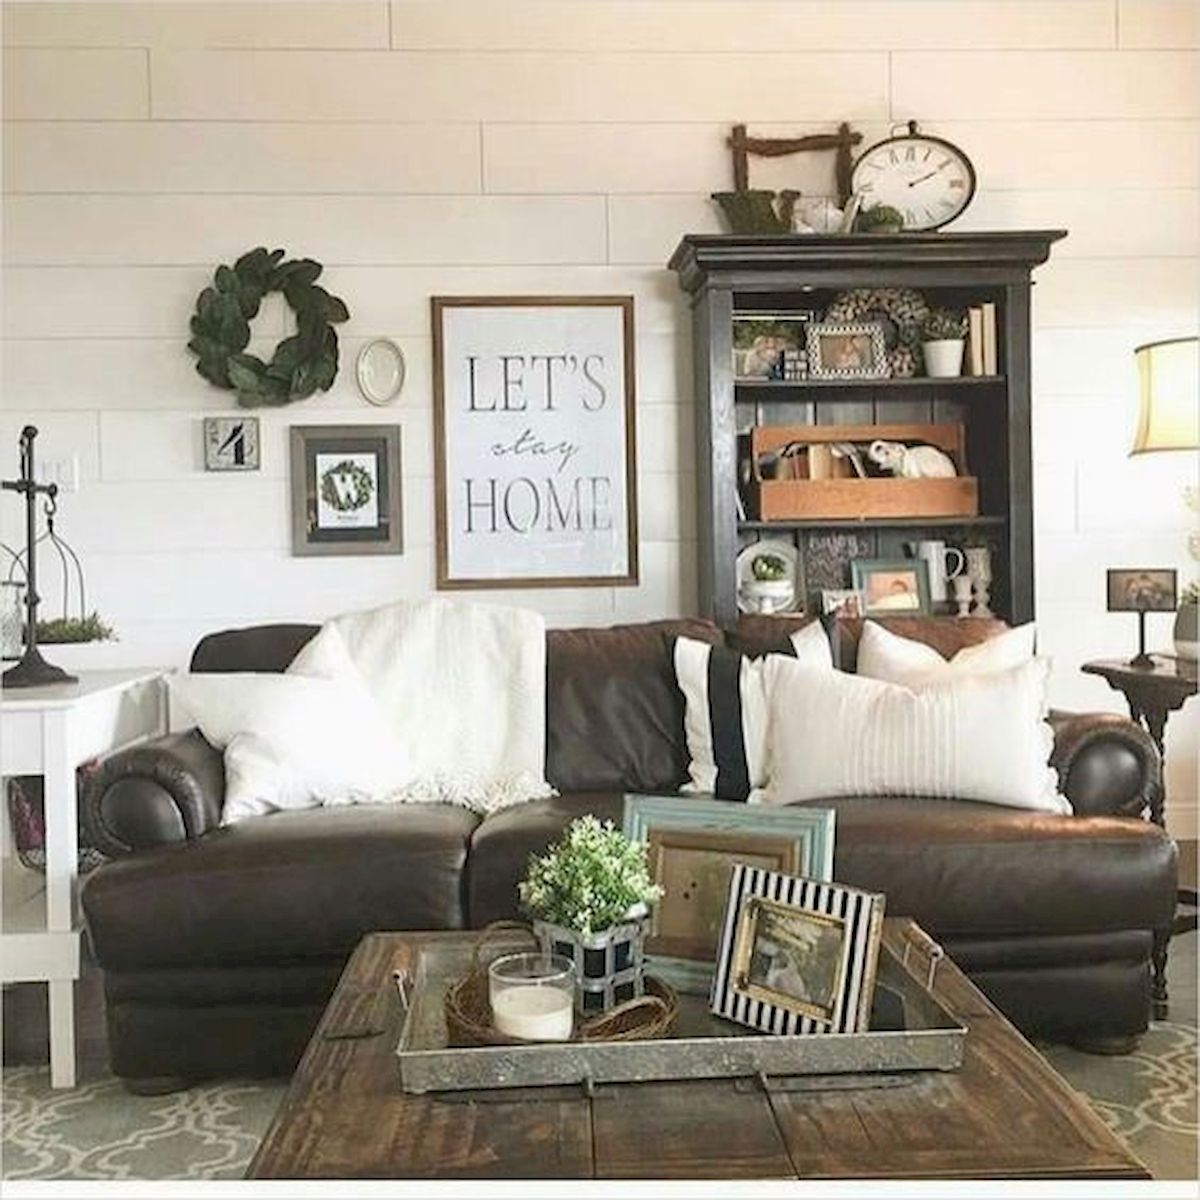 75 Best Farmhouse Wall Decor Ideas for Living Room (61)